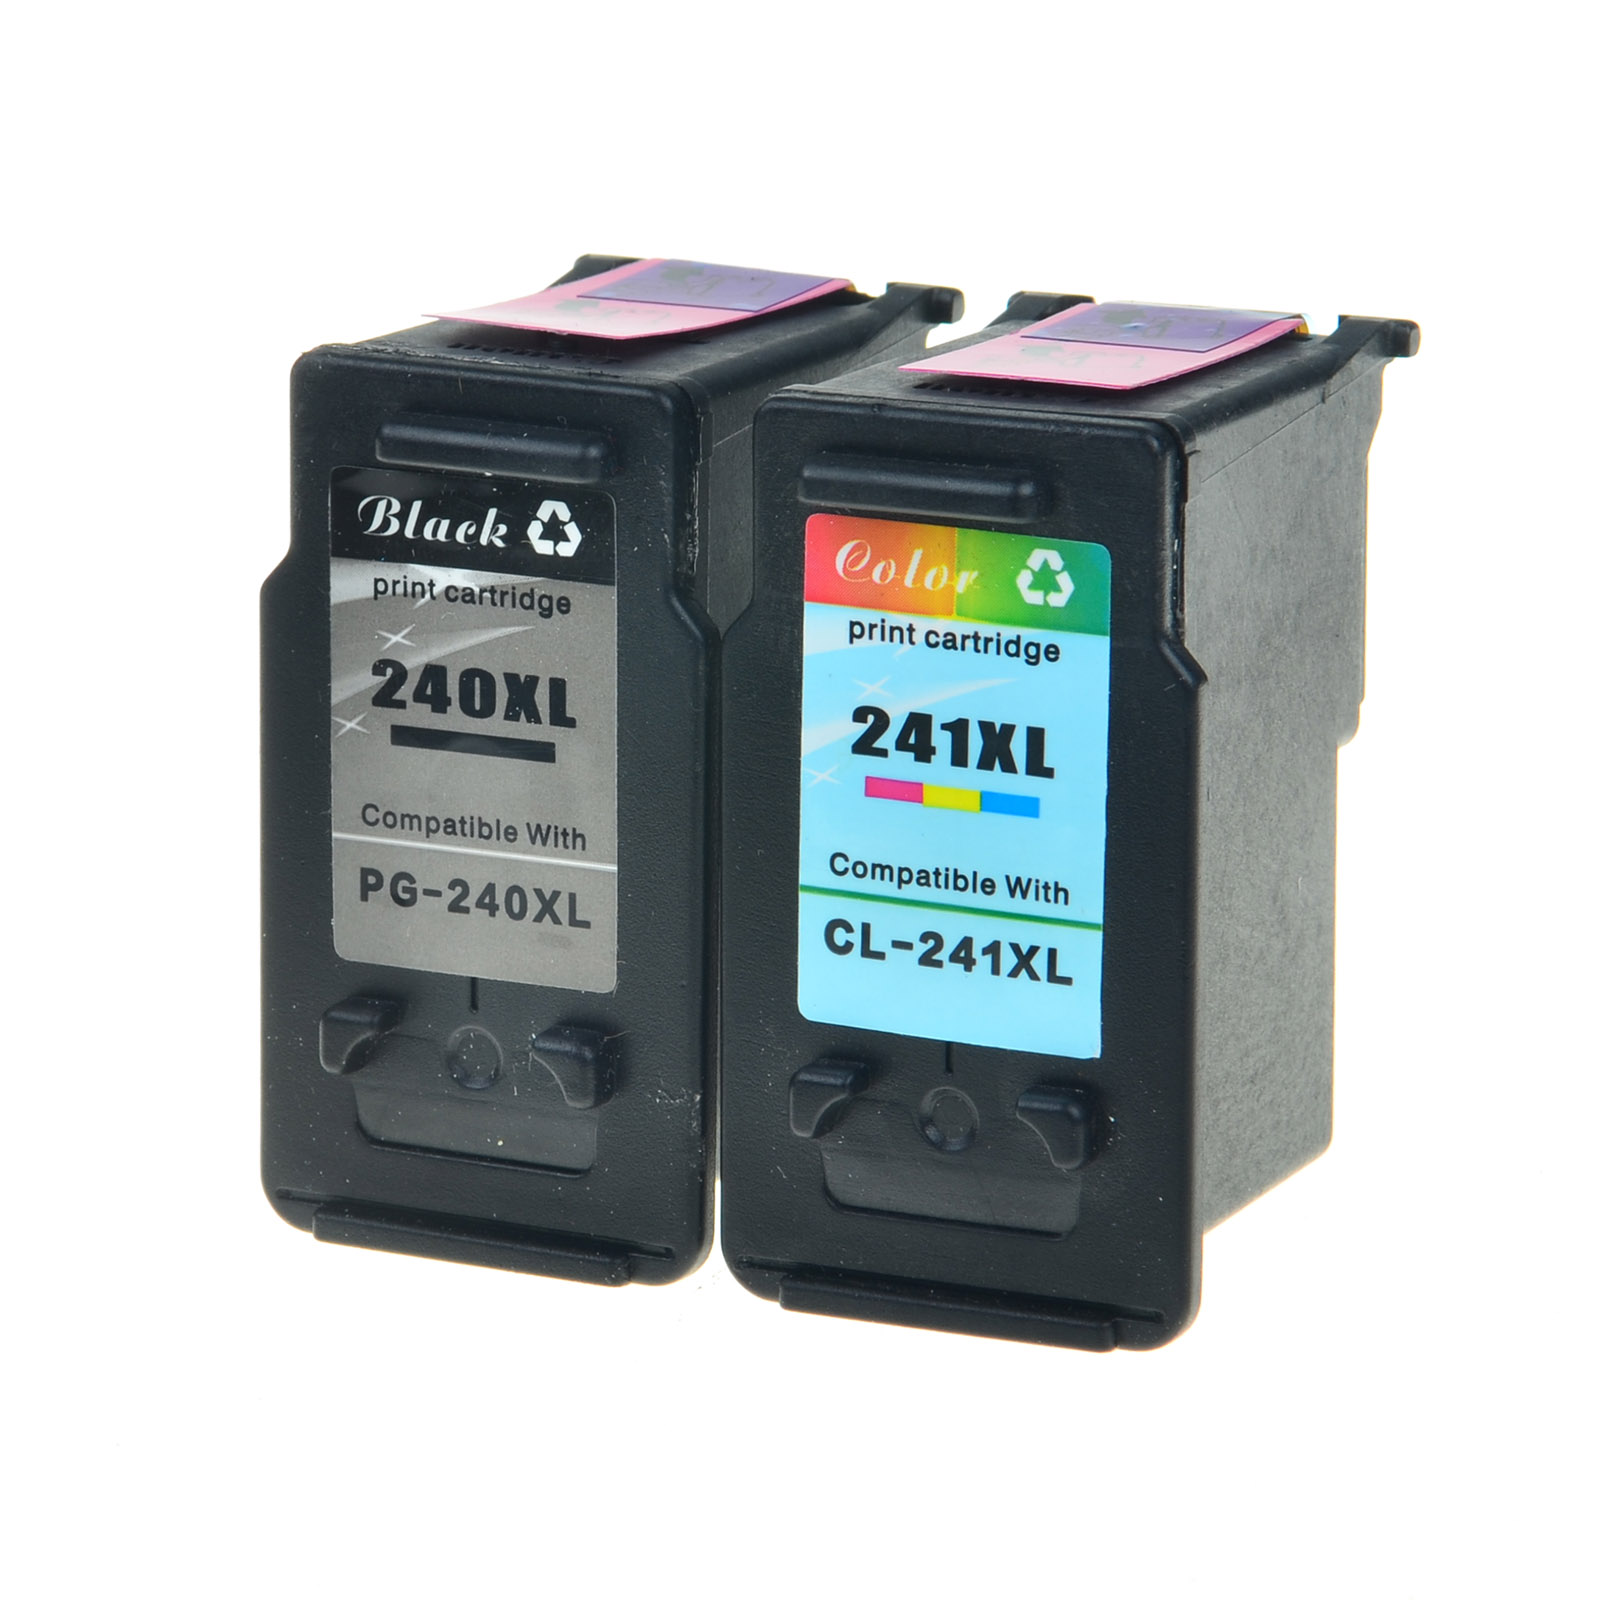 canon printer mg3520 how to change ink cartridge